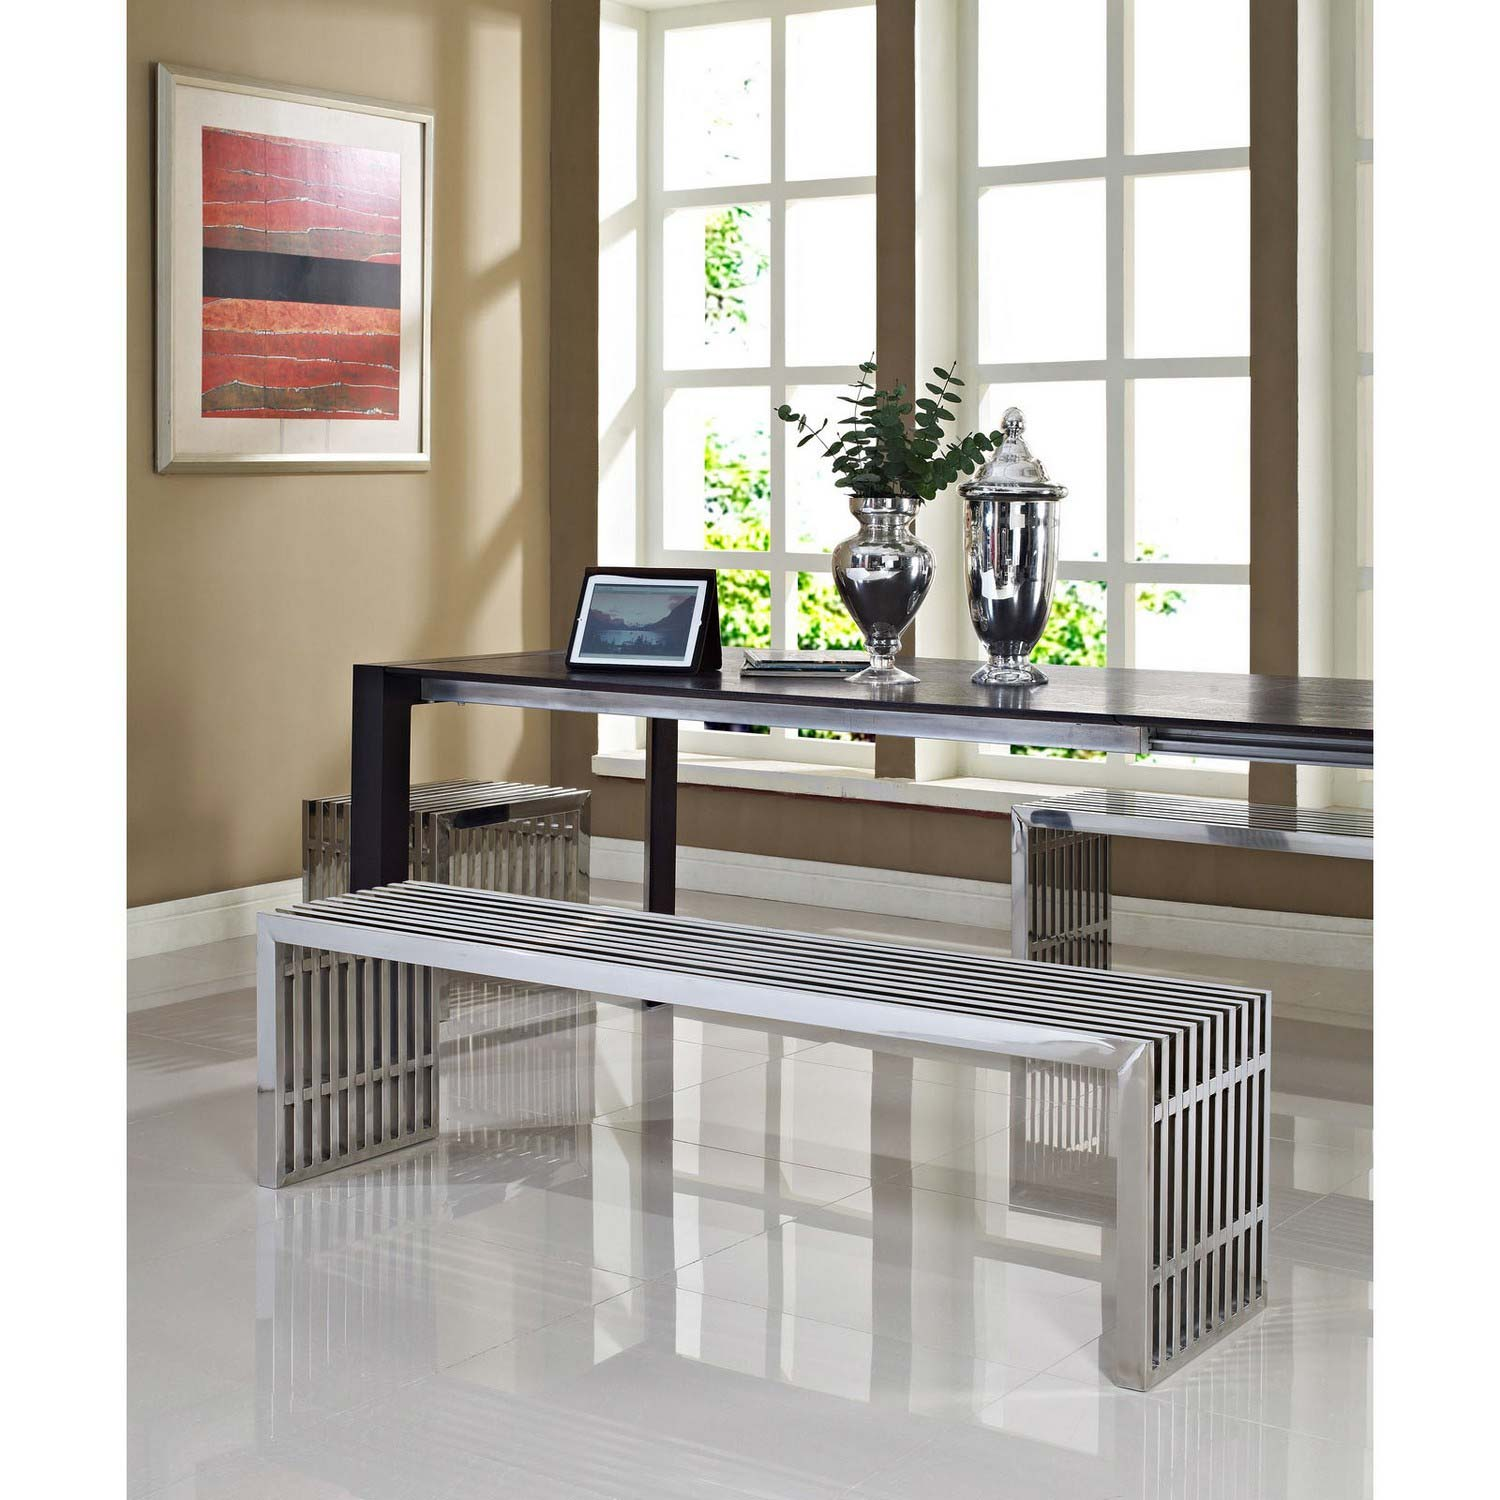 Modway Gridiron Benches Set of 3 - Silver